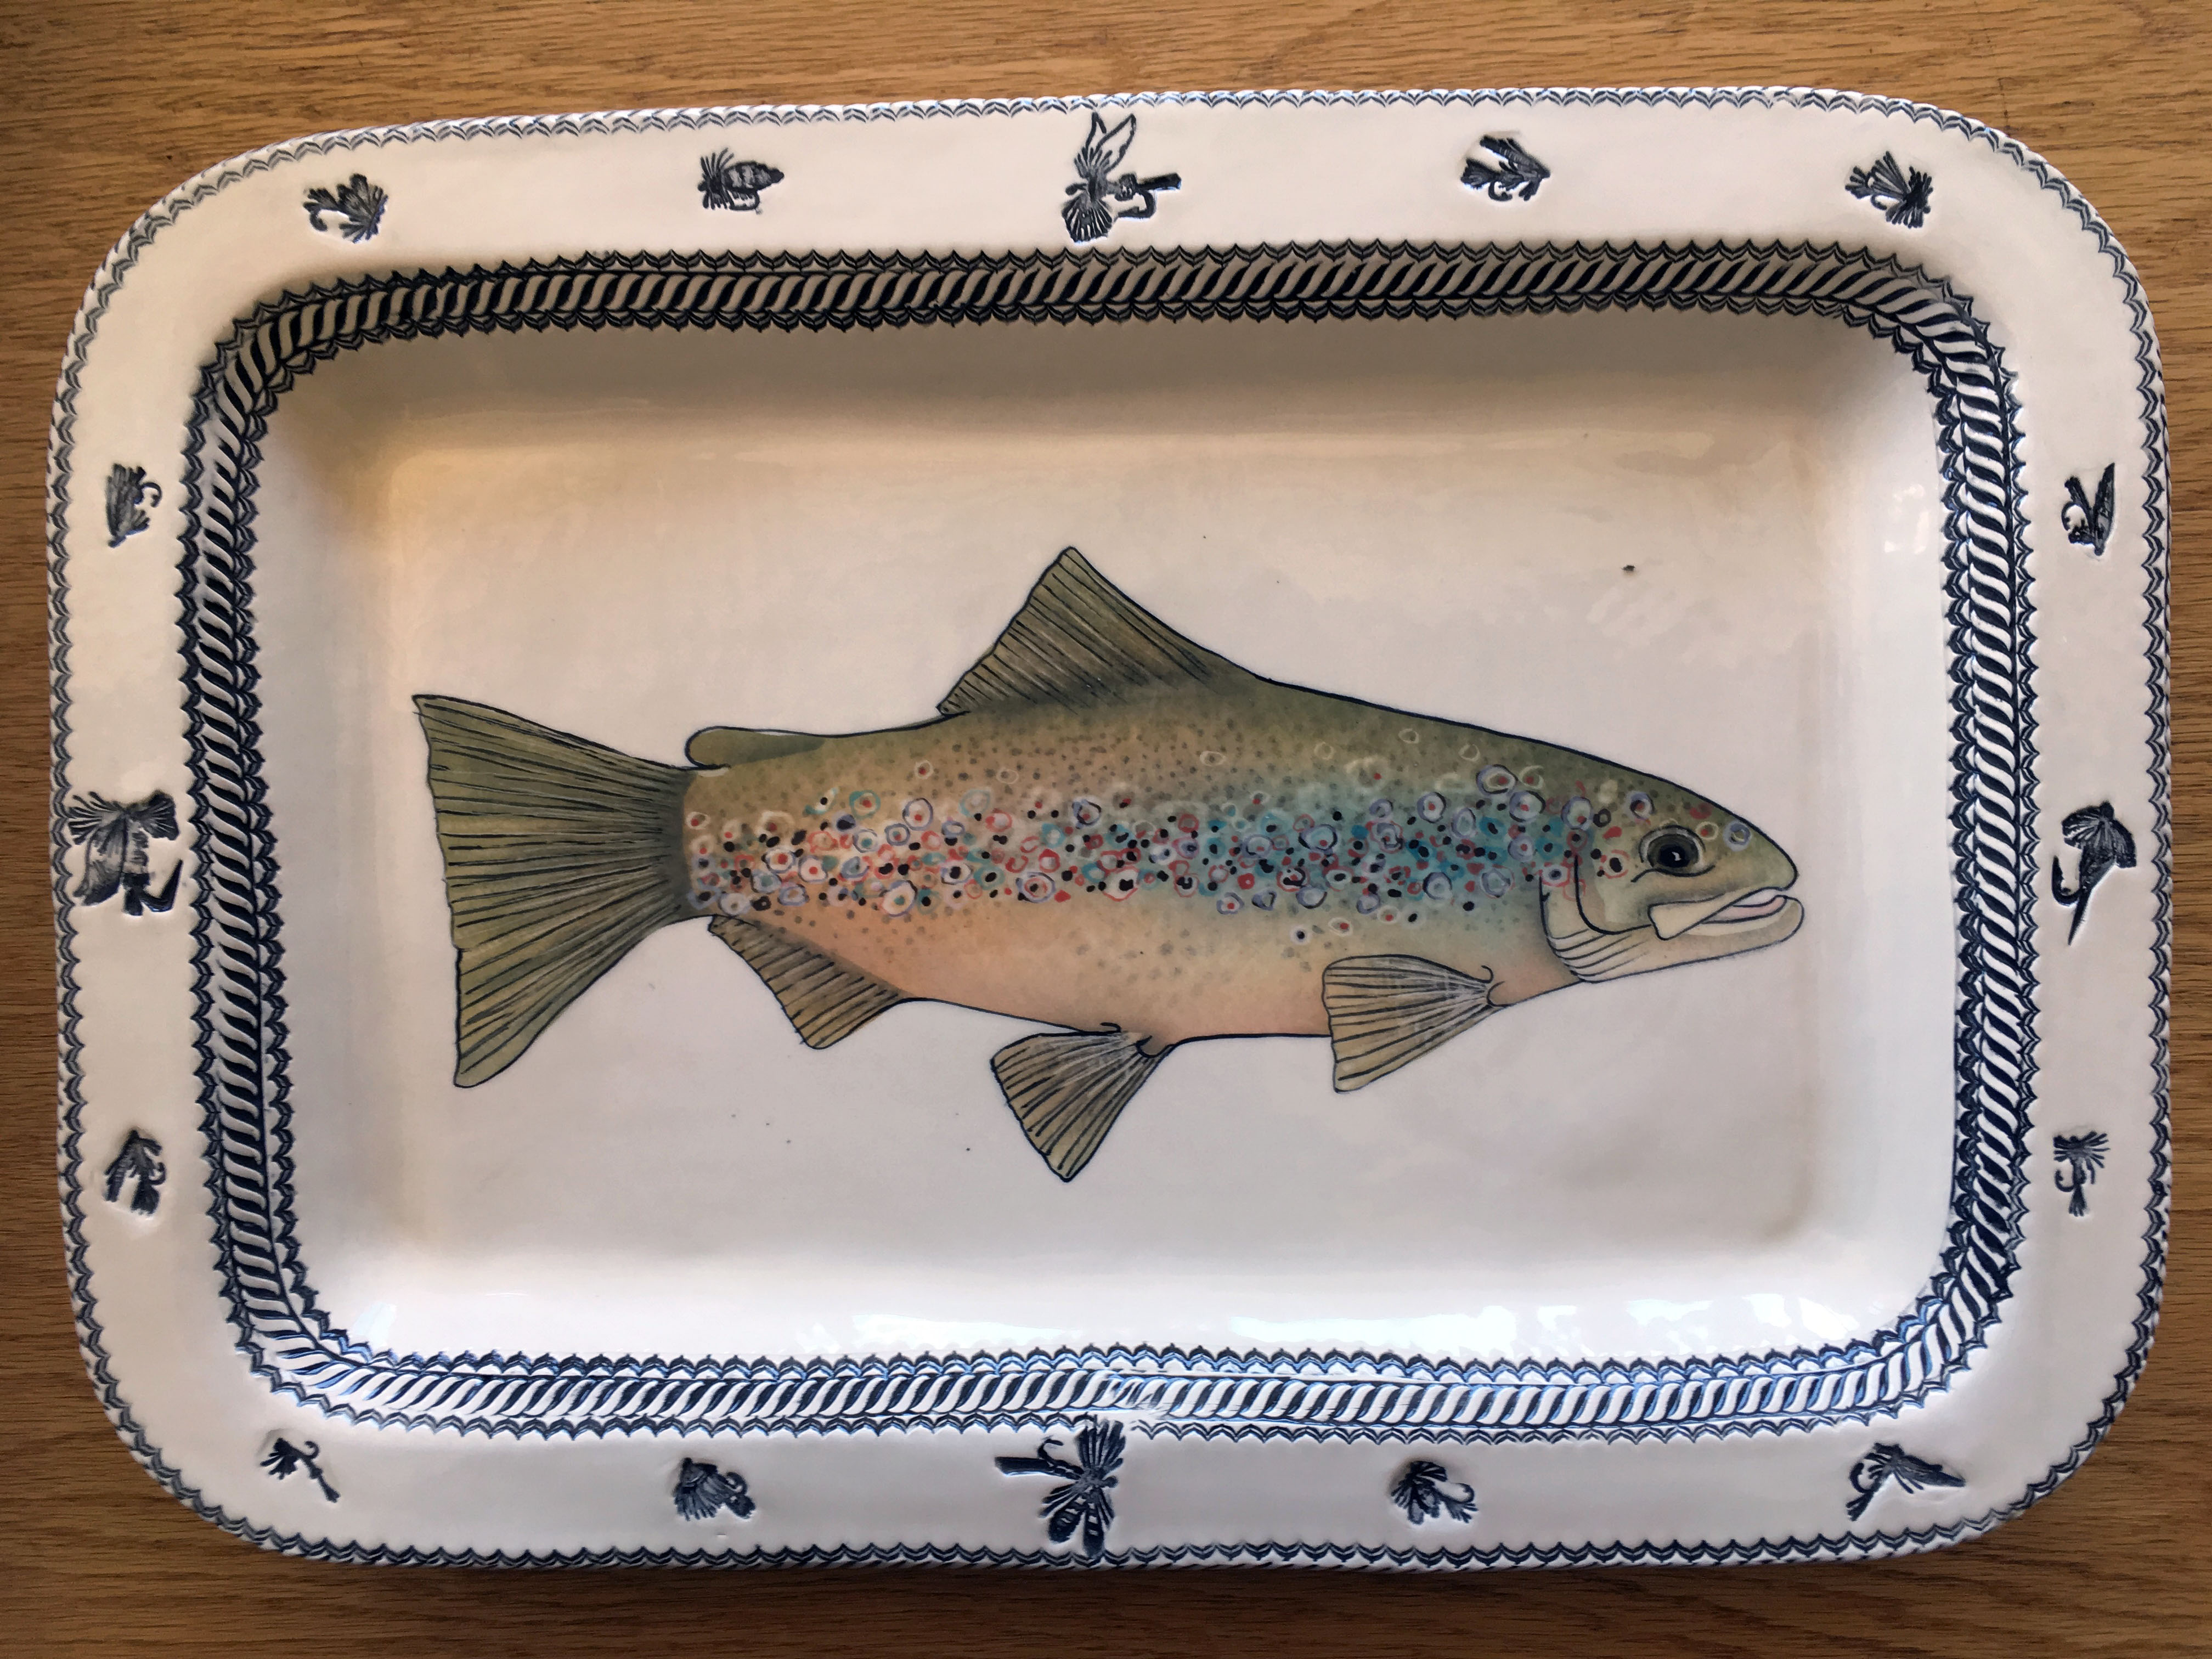 Handmade, Hand-painted Trout Platter by EJ Harpham, Retail $175